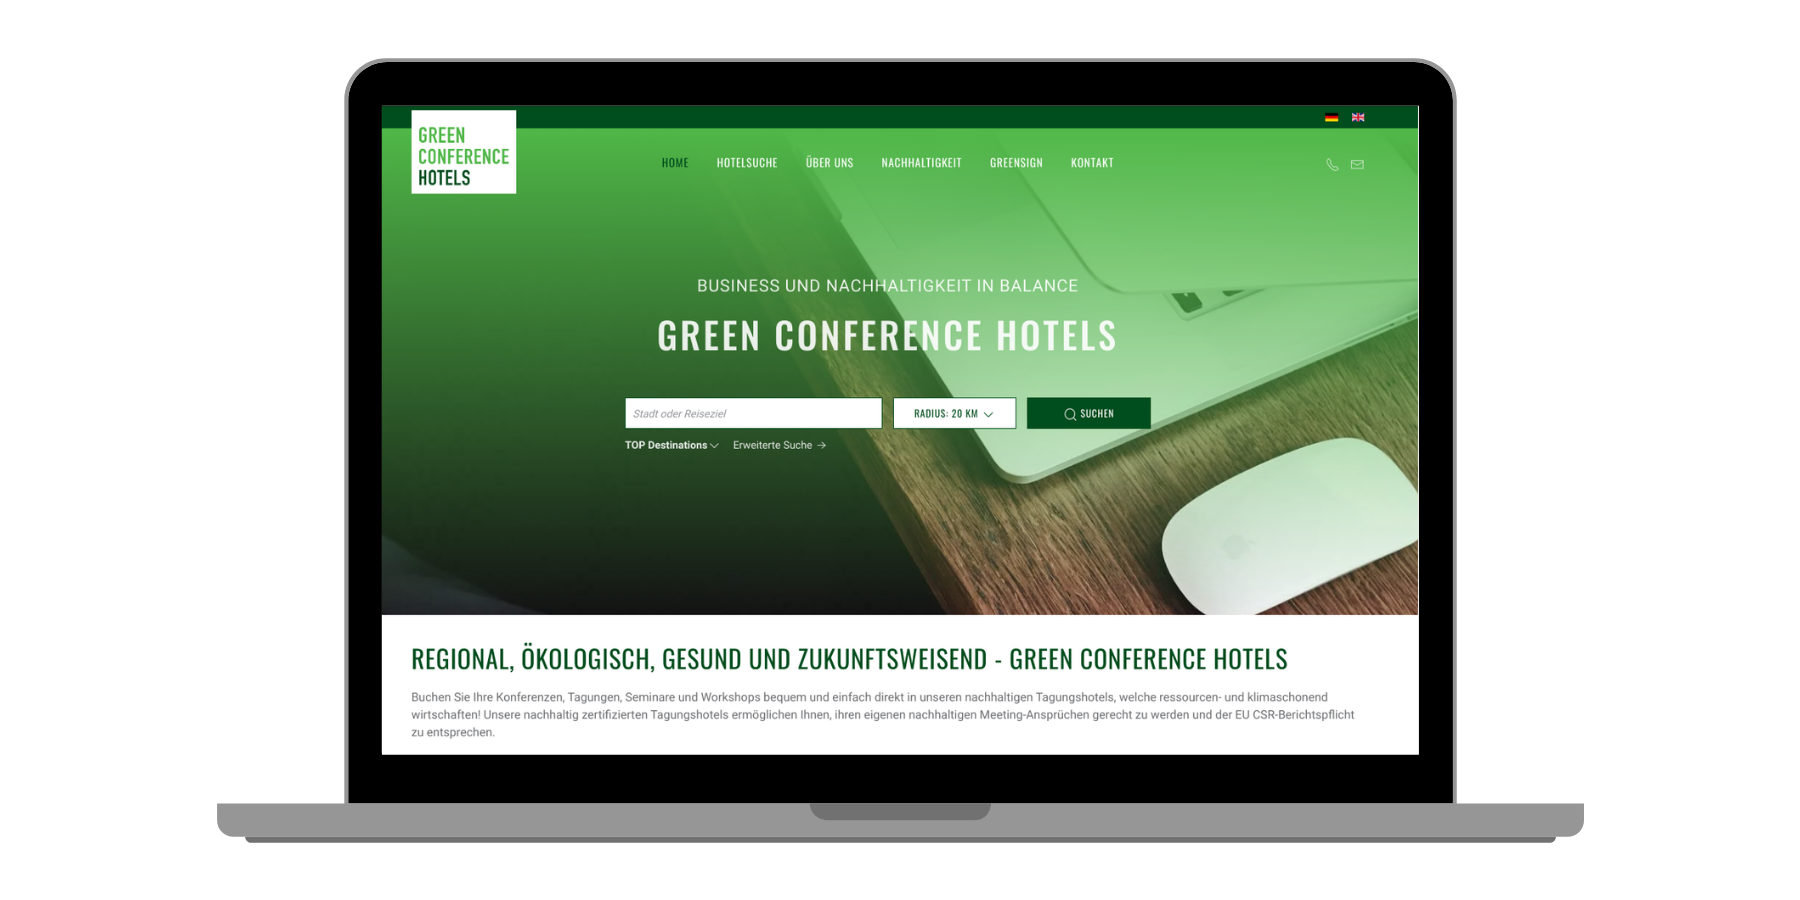 Green Conference Hotels